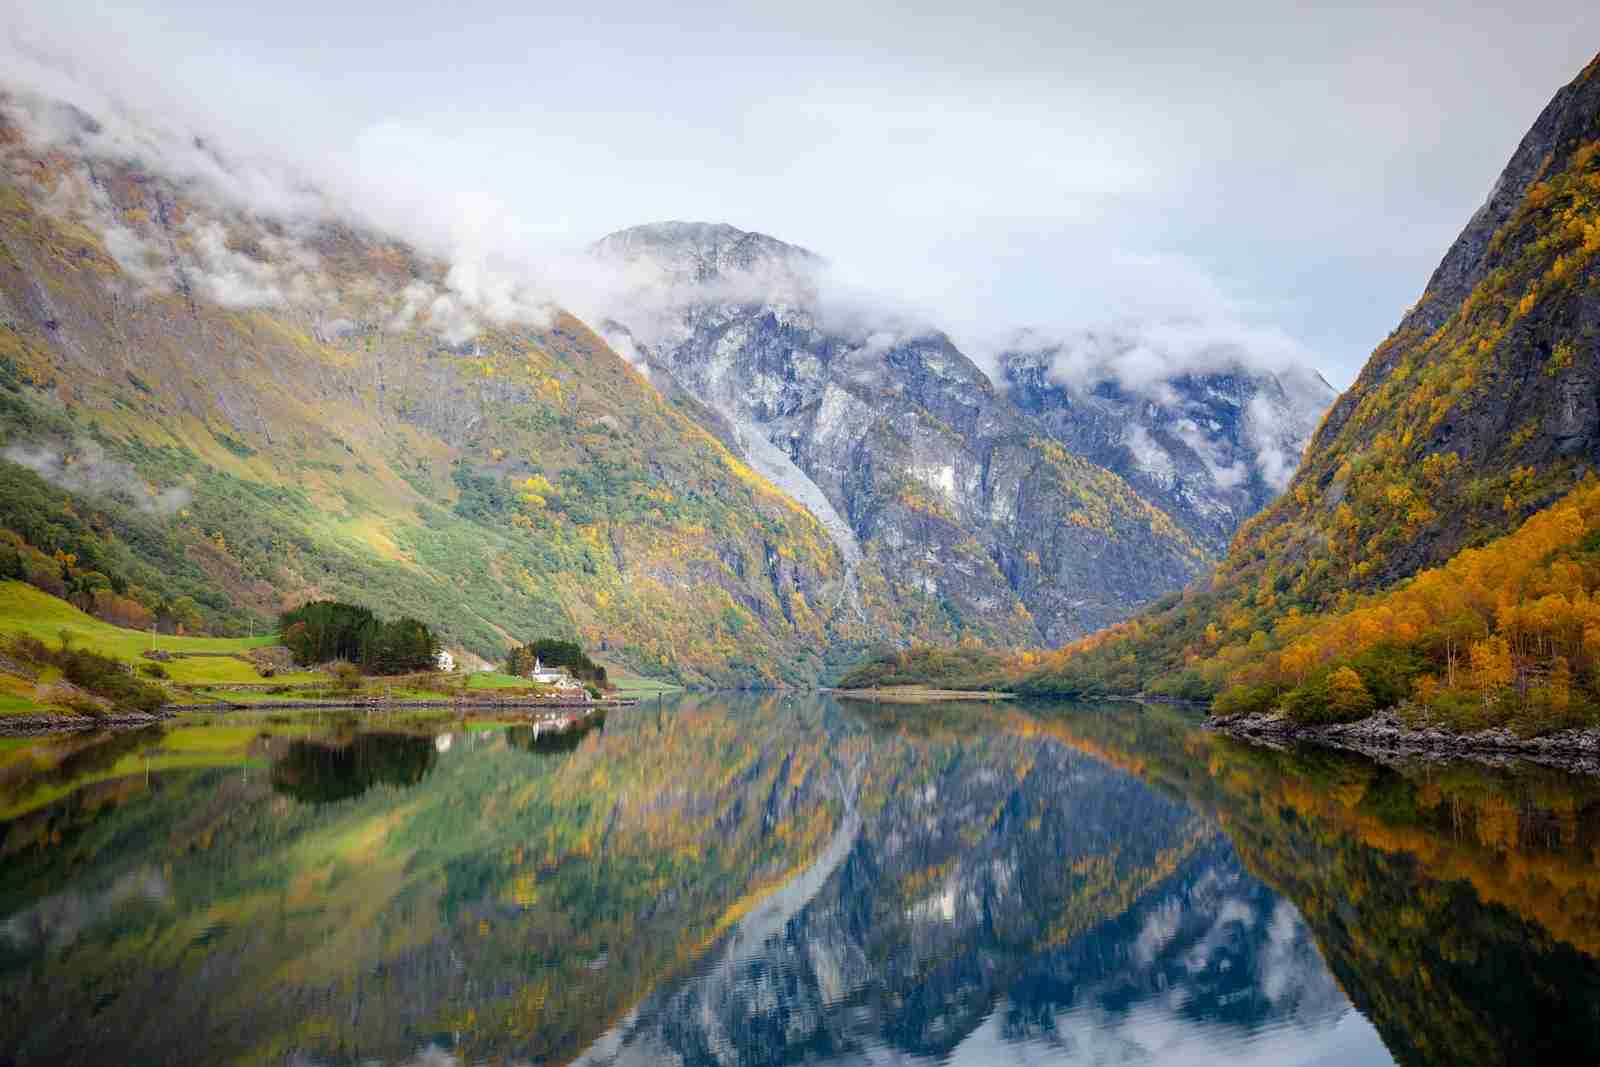 Sognefjord in Norway. (Photo by Hou/Getty Images)